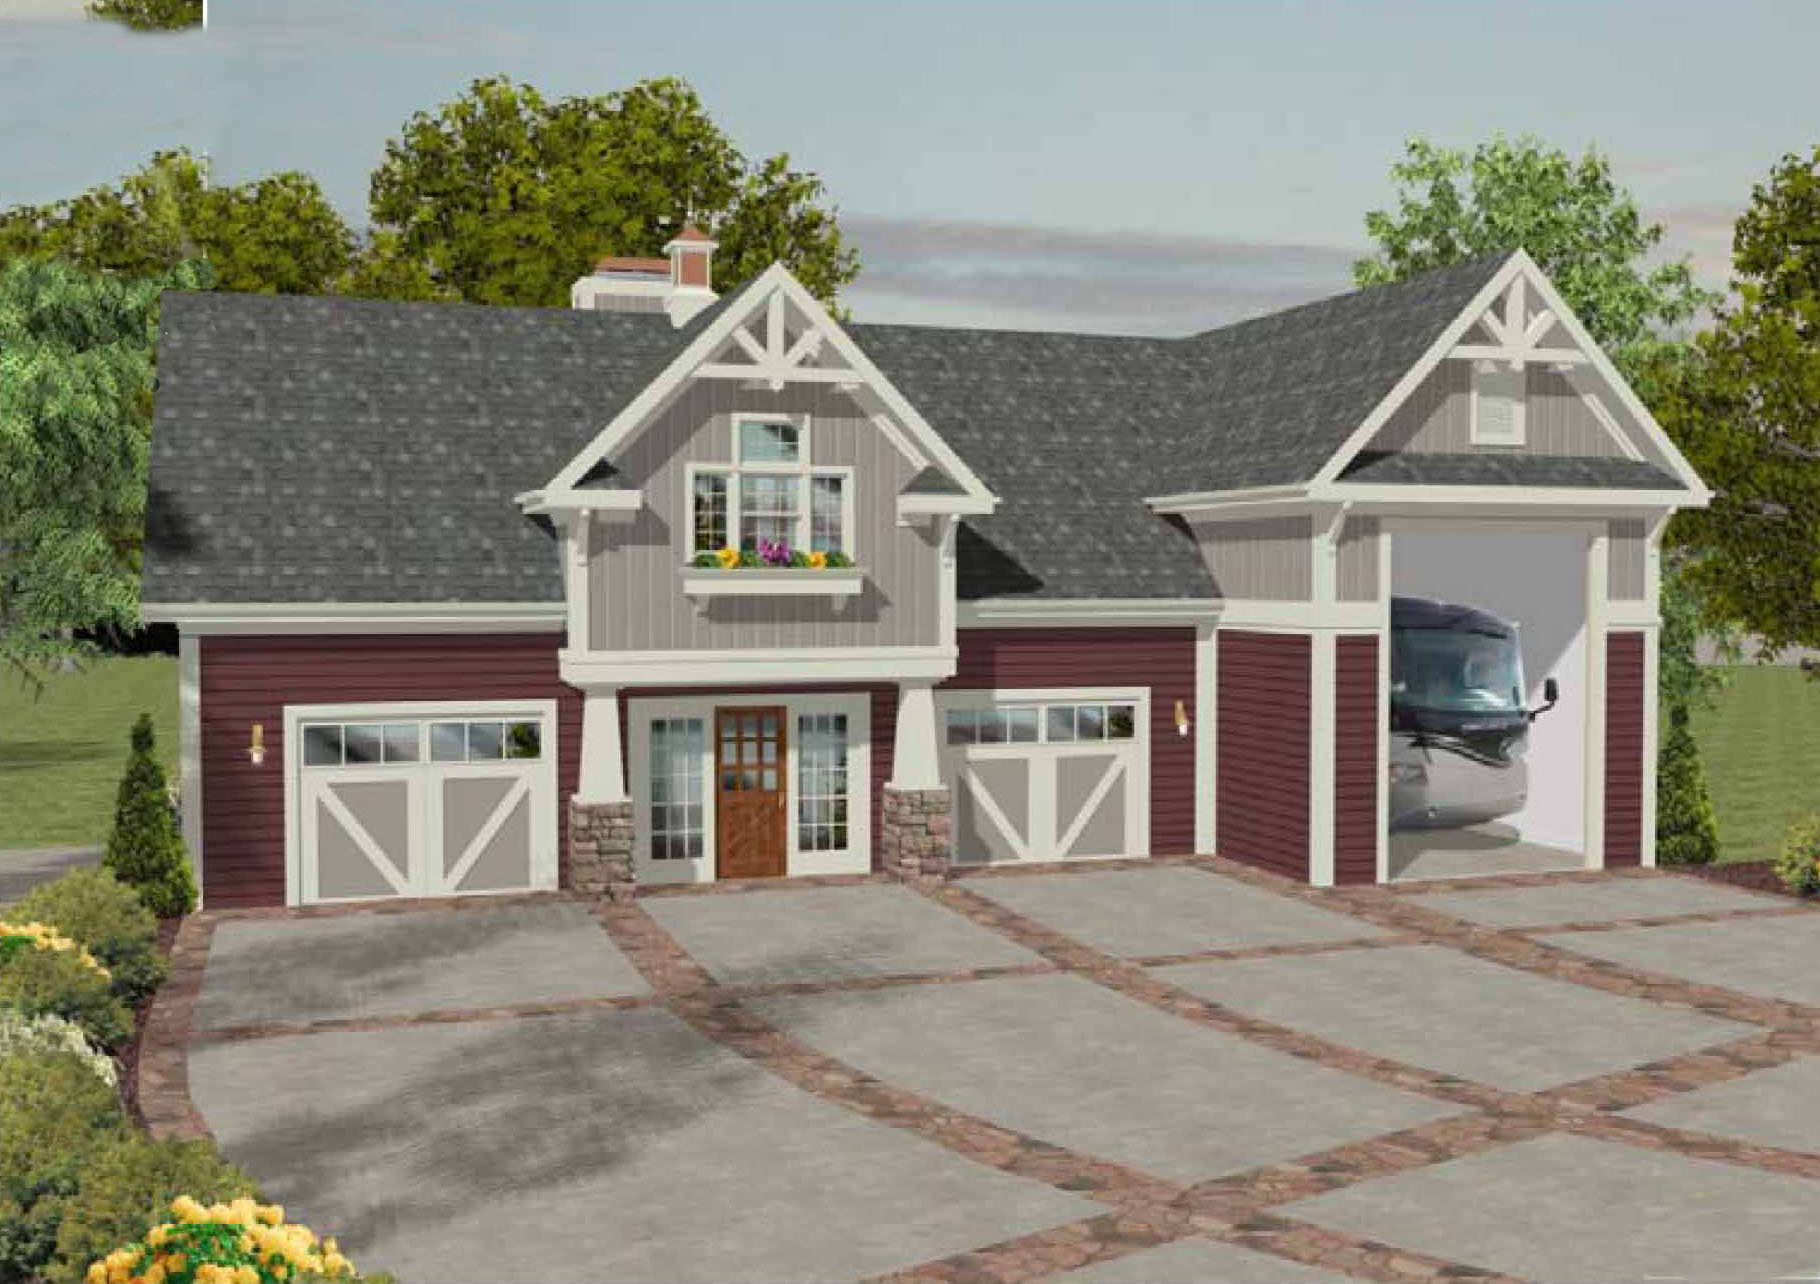 Architectural designs for Rv garage plans and designs